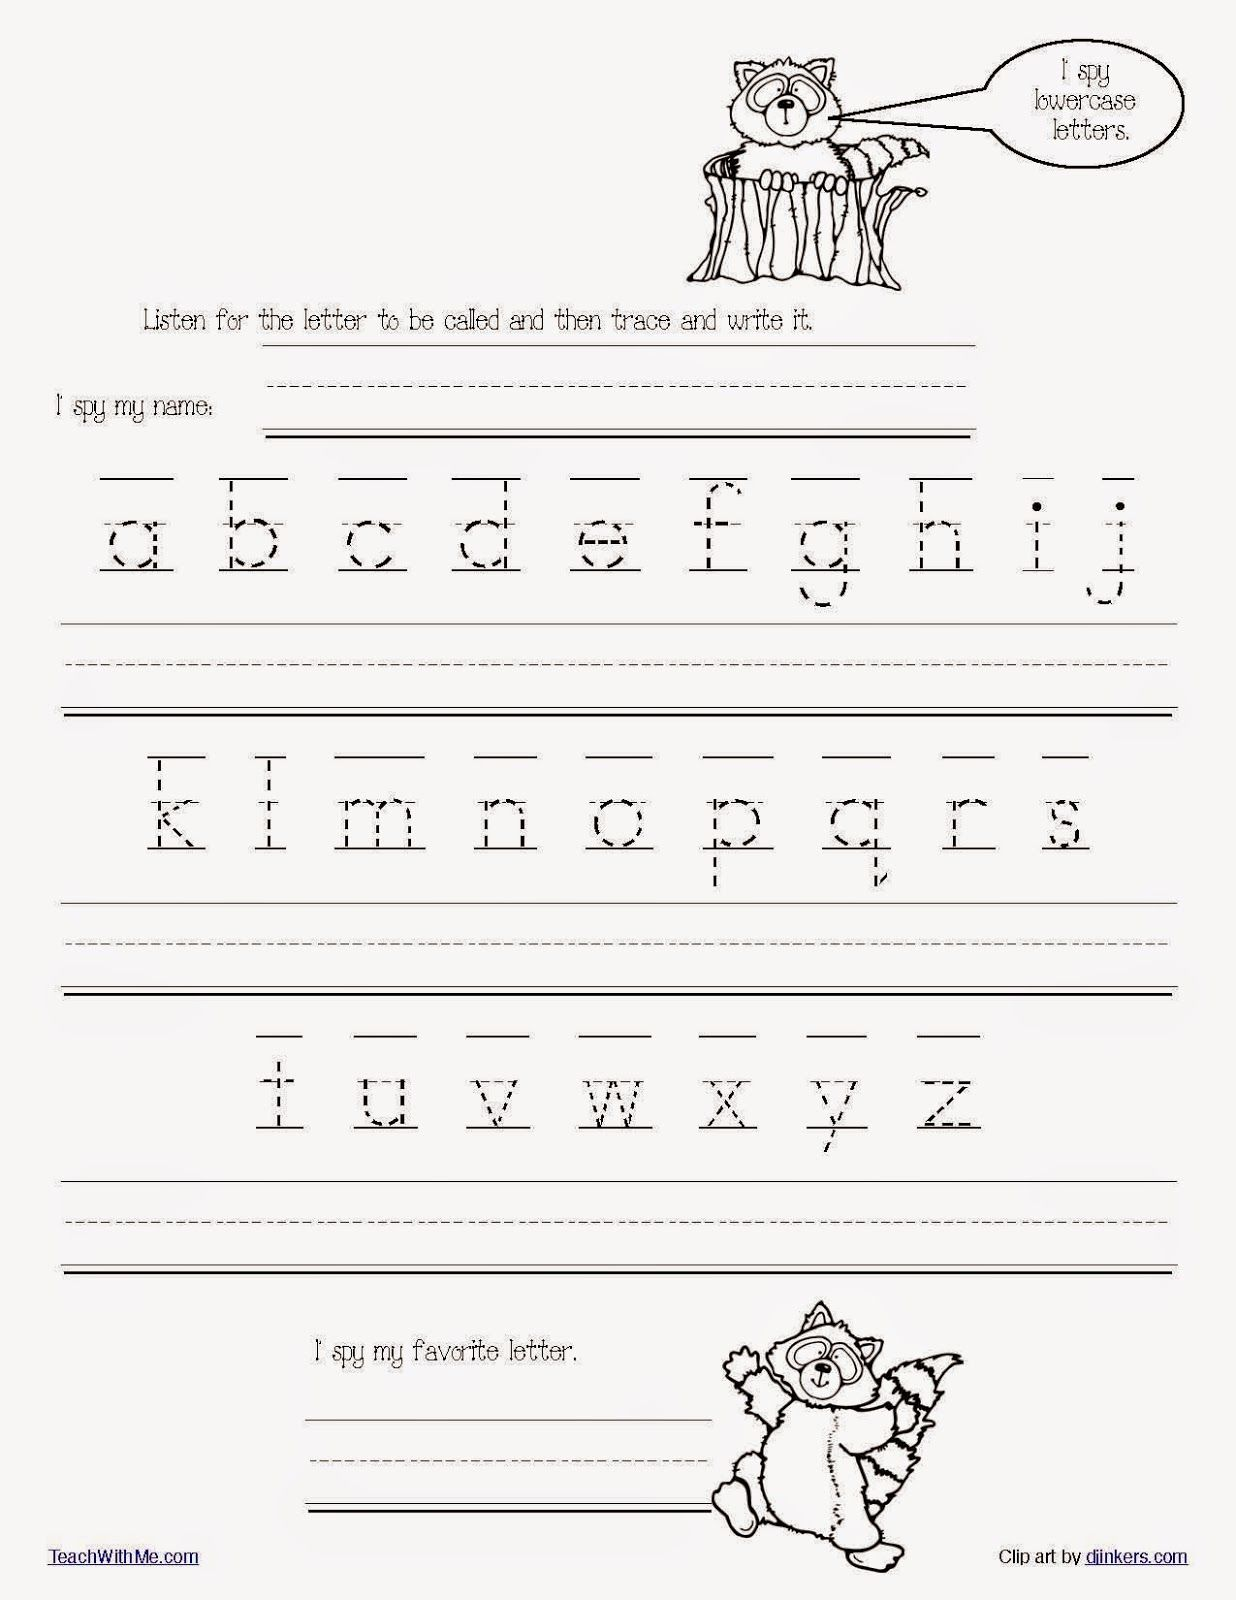 The Kissing Hand Alphabet Games Packet   Handwriting worksheets for  kindergarten [ 1600 x 1236 Pixel ]